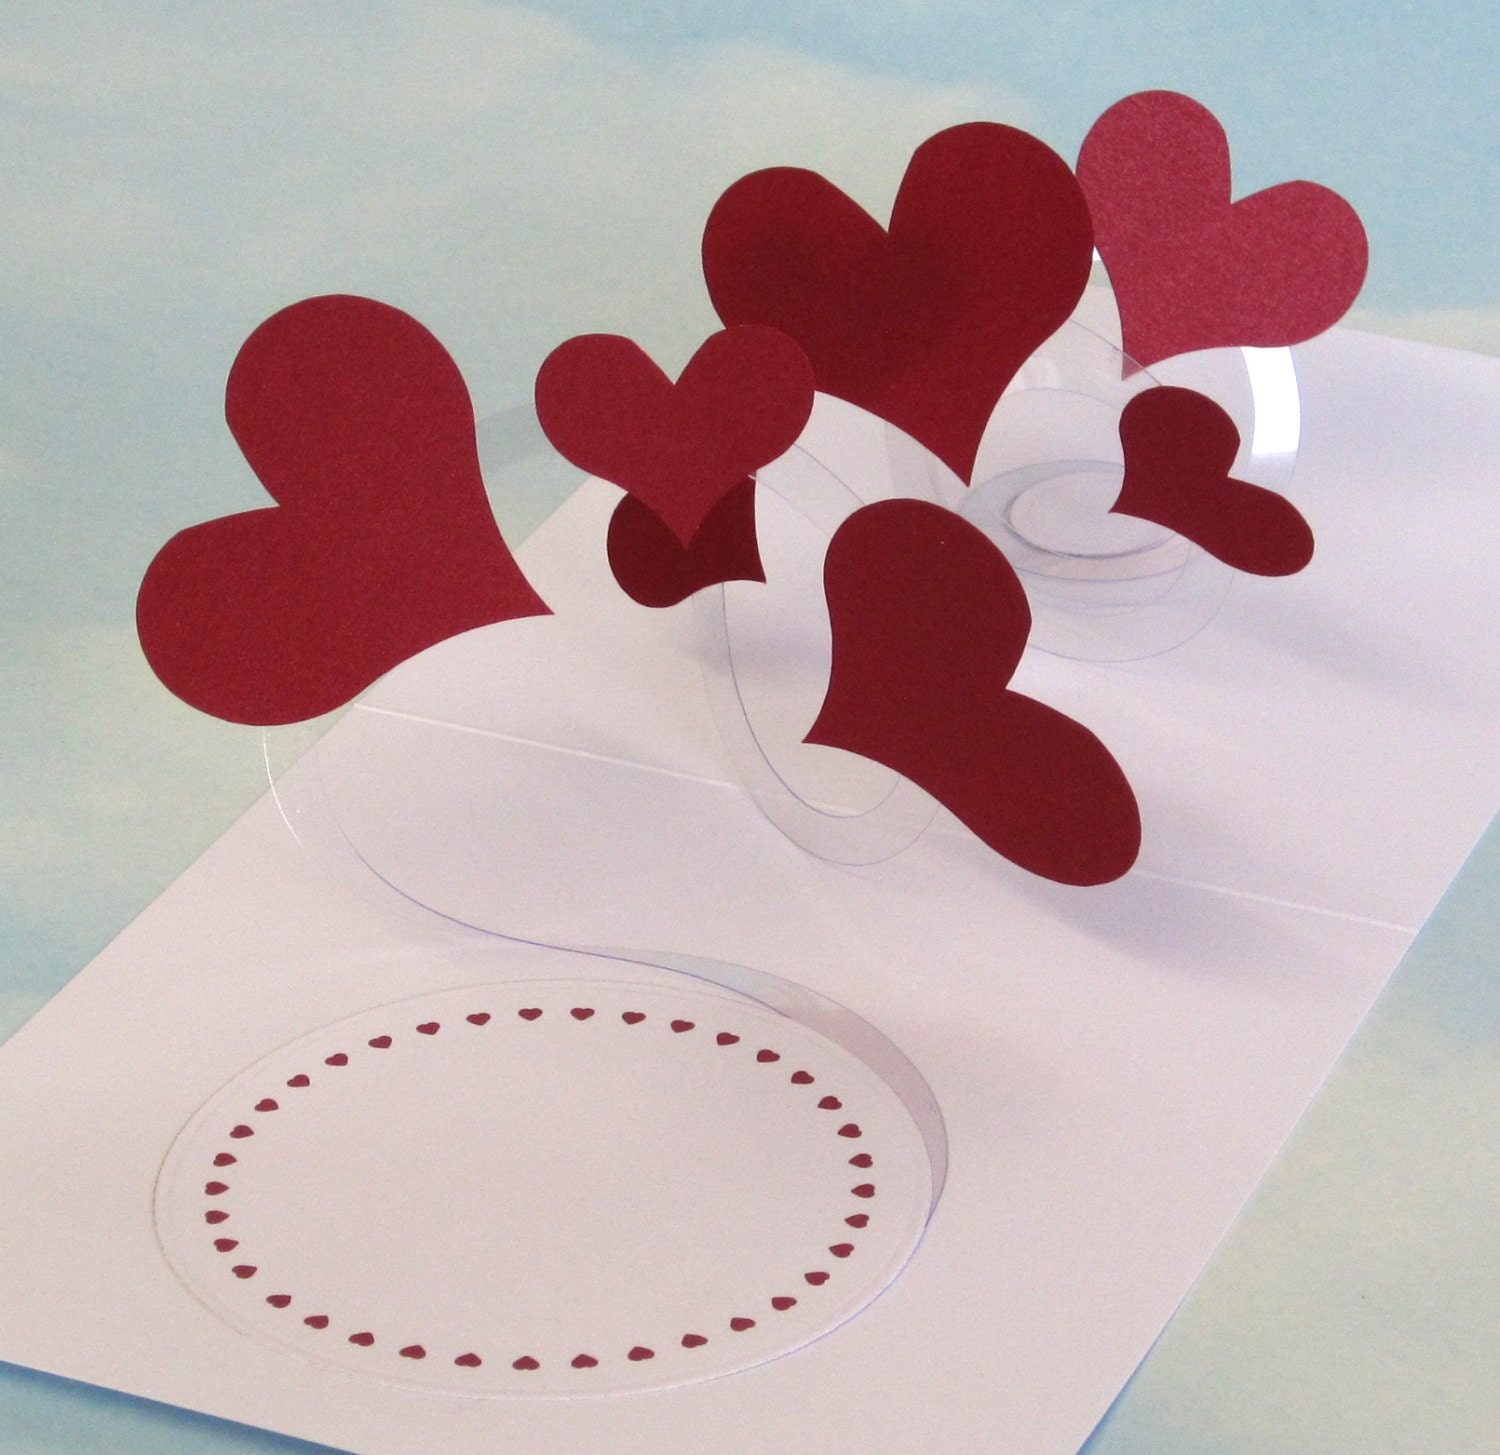 Hearts Card Spiral Pop Up 3D Hearts PopUp Card – Pop Up Valentines Day Card